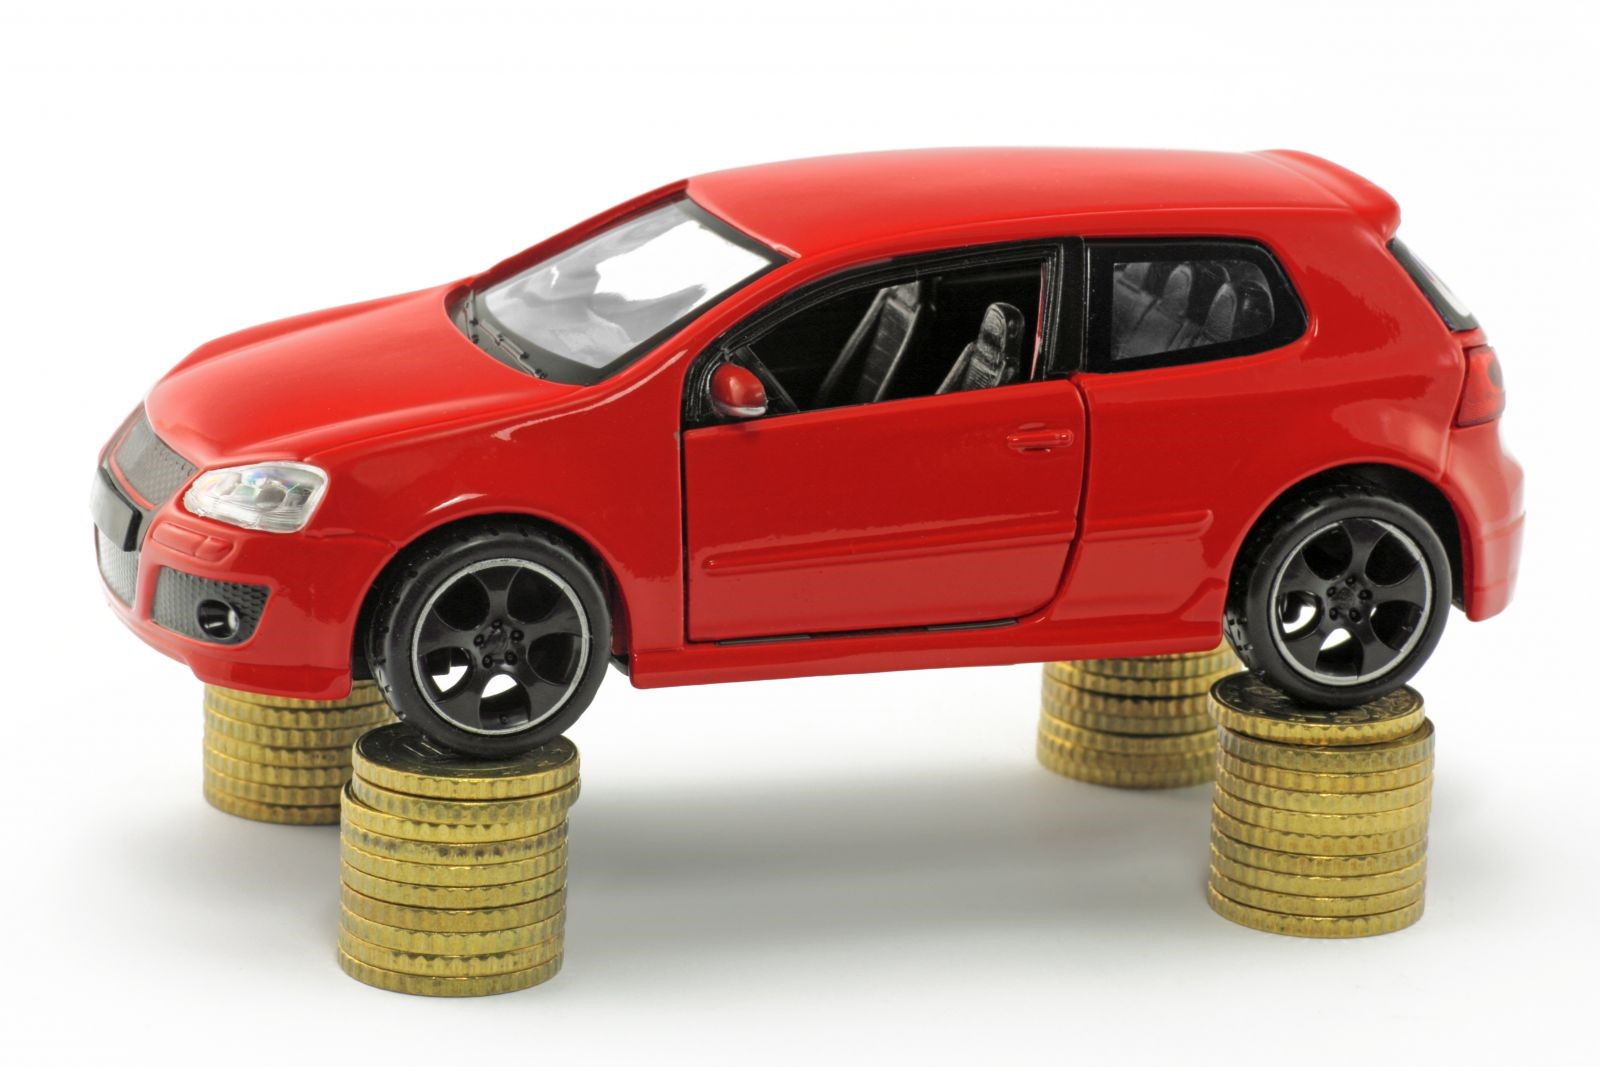 Factors That Affect Your Car Insurance Rates